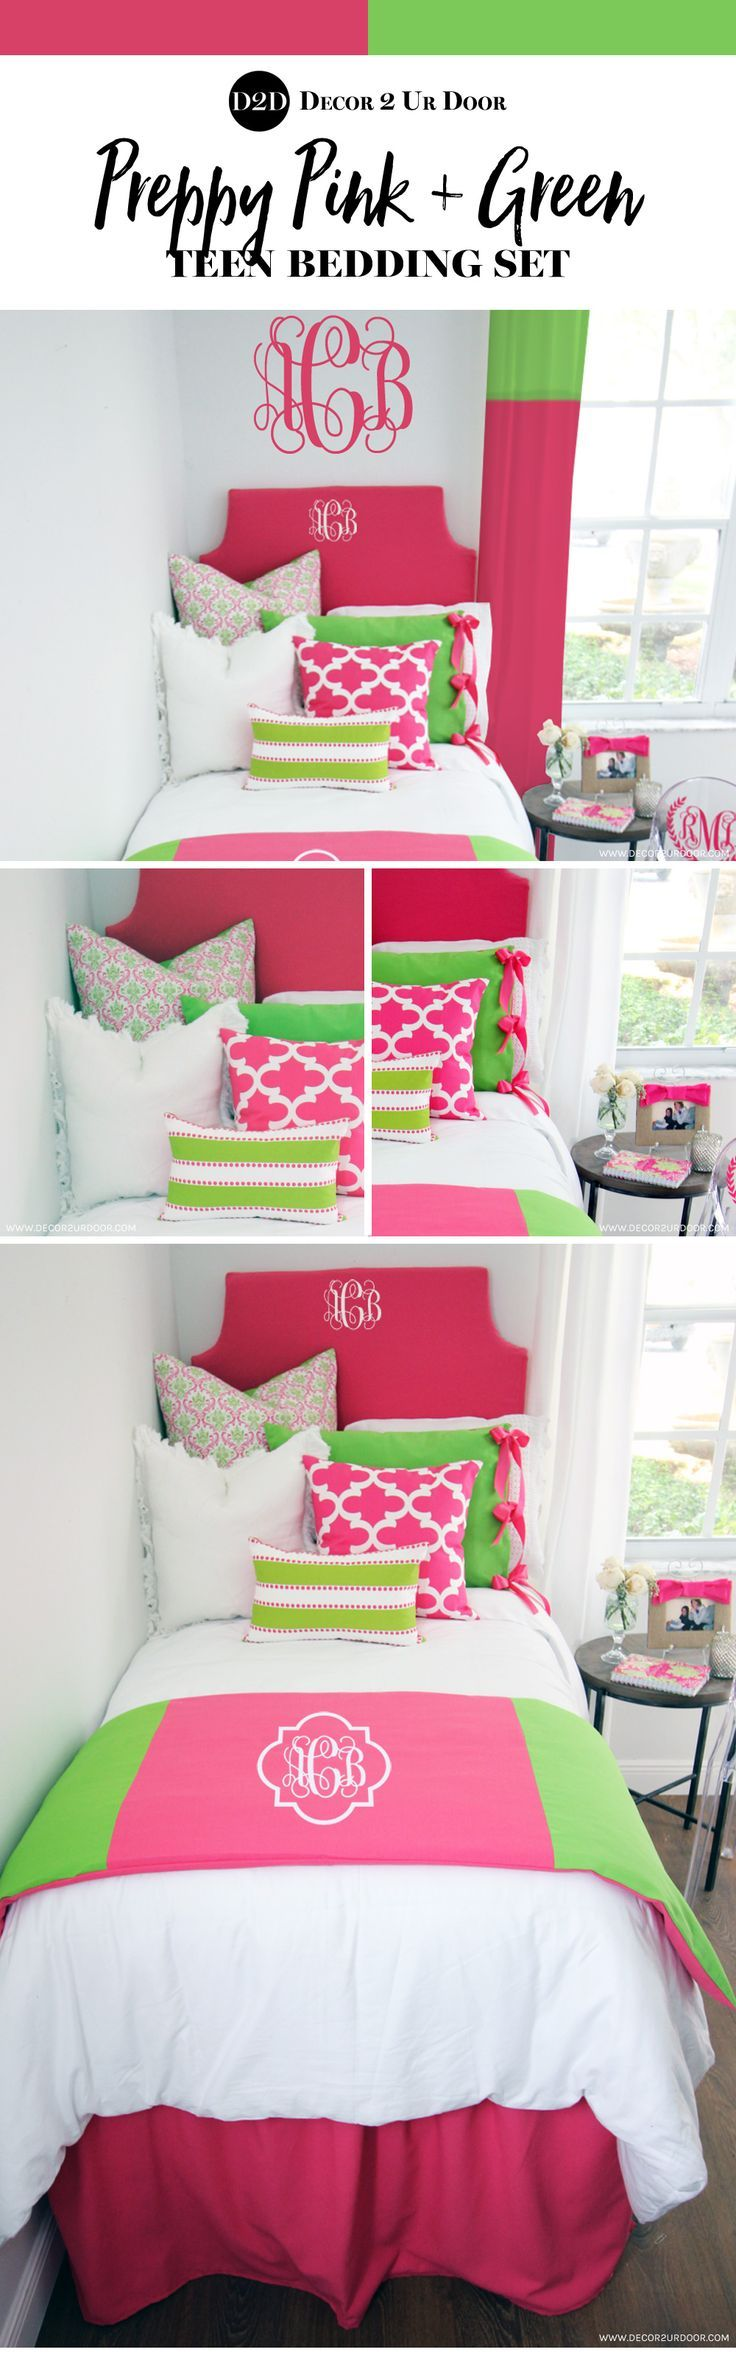 exciting teen girl bedroom green | New Preppy Pink & Green Designer Teen Girls Bedding ...